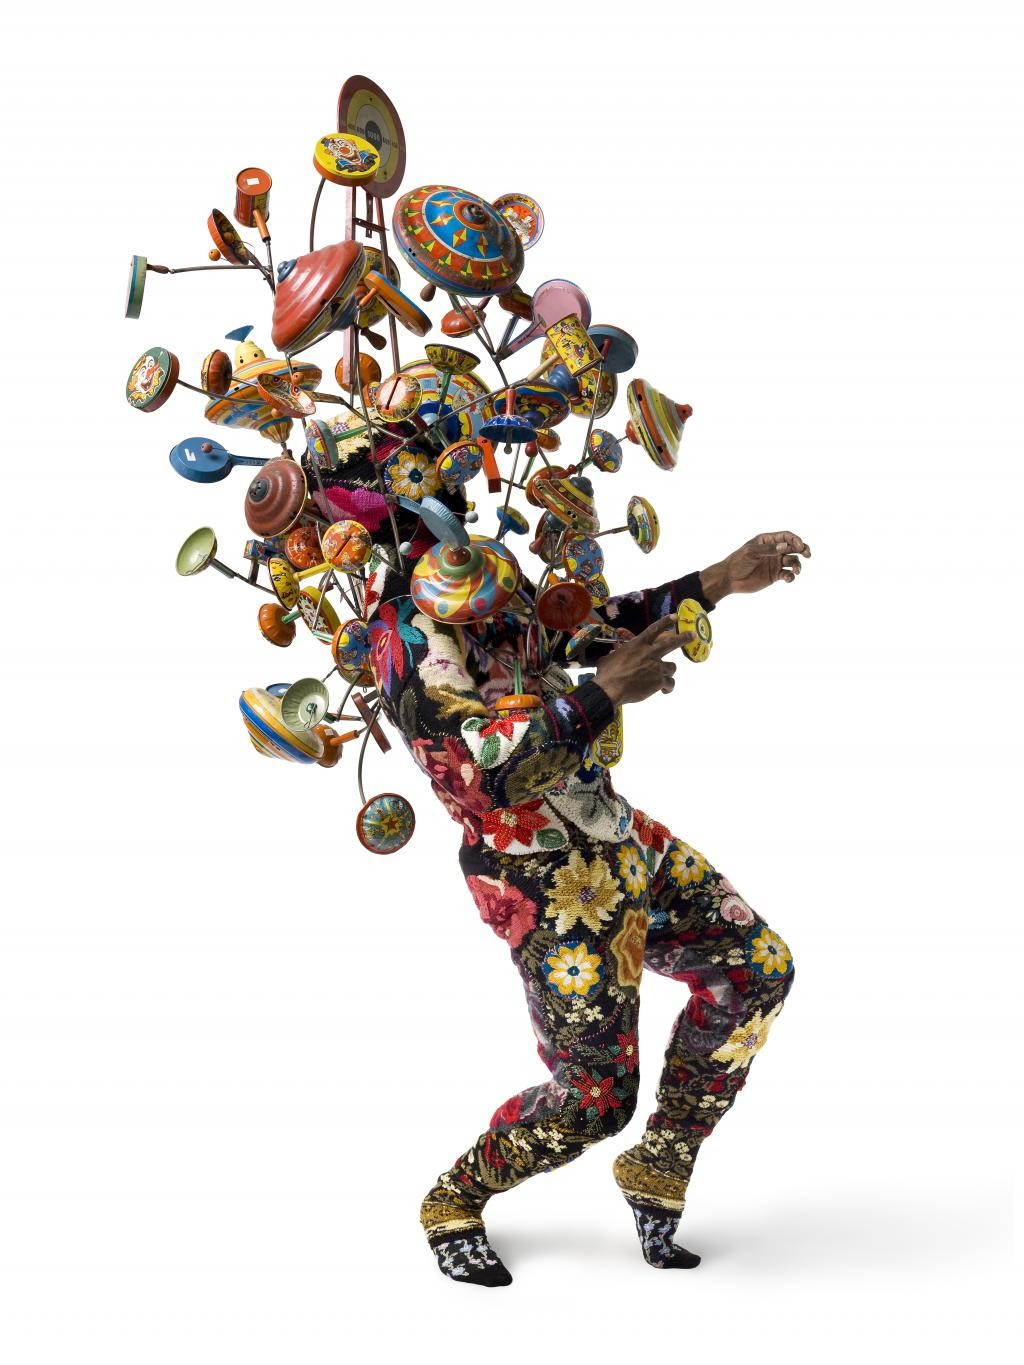 main work - Nick Cave, Soundsuit #1